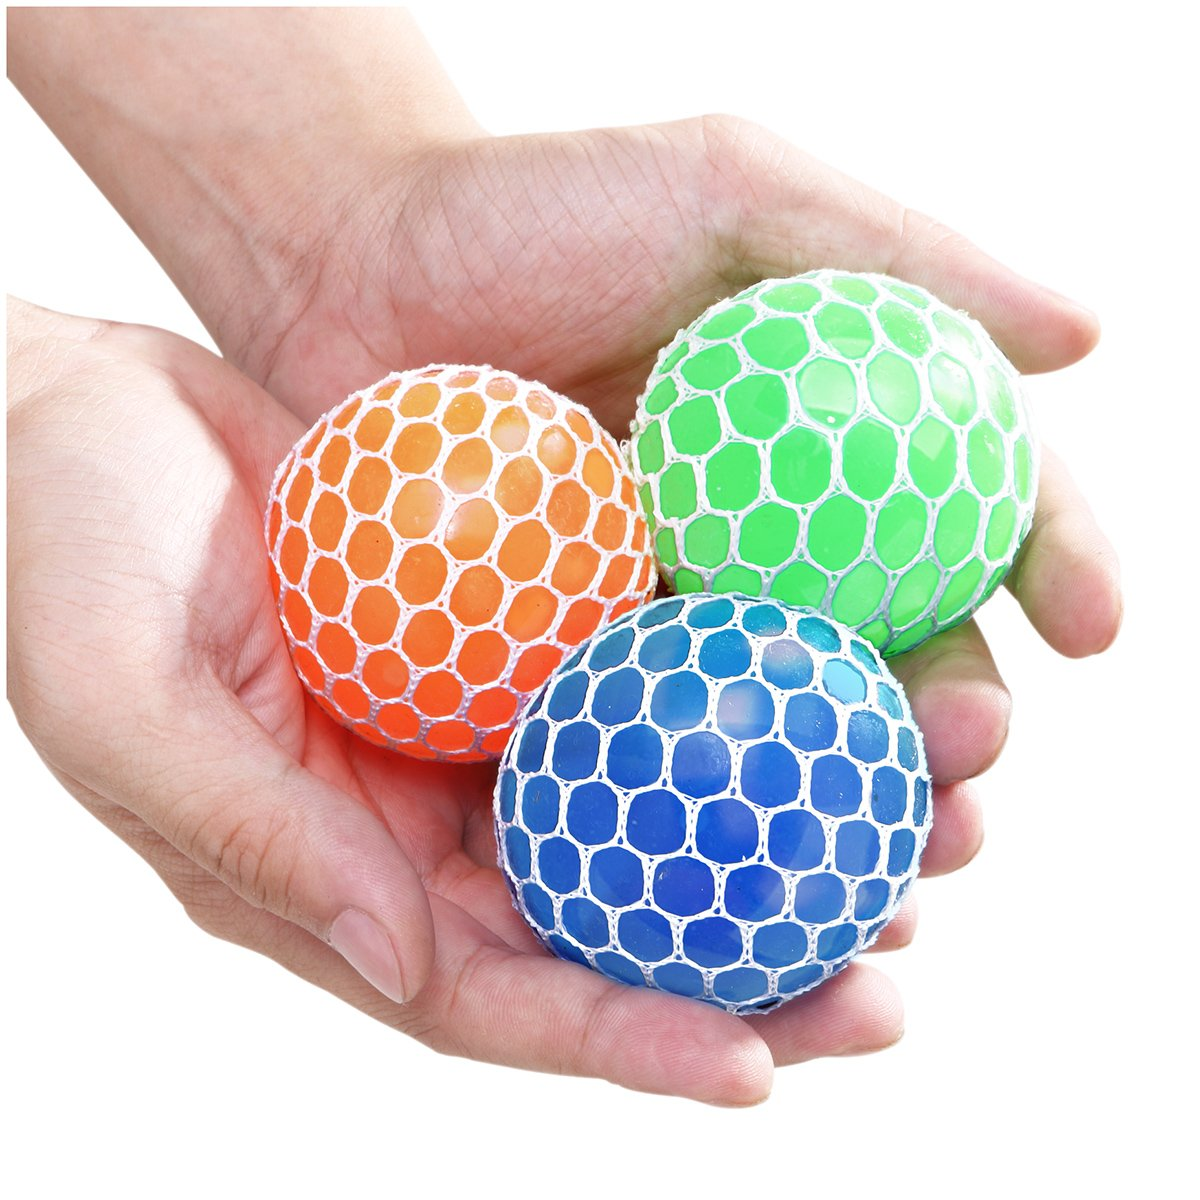 Obeda 3 Set Mesh Grape Stress Ball for Kids and Adults, Boys and Girls Hand & Wrist Sensory Tool to Vent Mood, Relieve Anxiety and Autism, Fun & Soft Novelty Pressure Ball